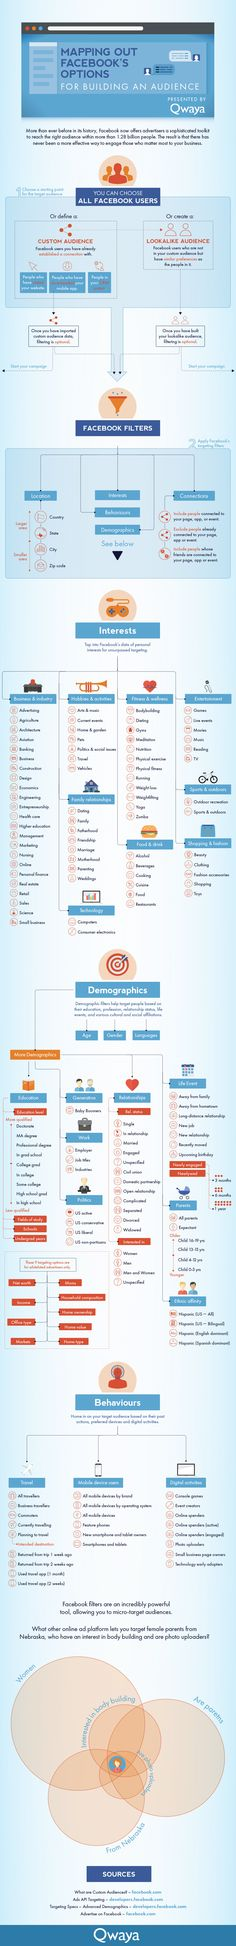 Mapping Out #Facebook's Options for Building an Audience